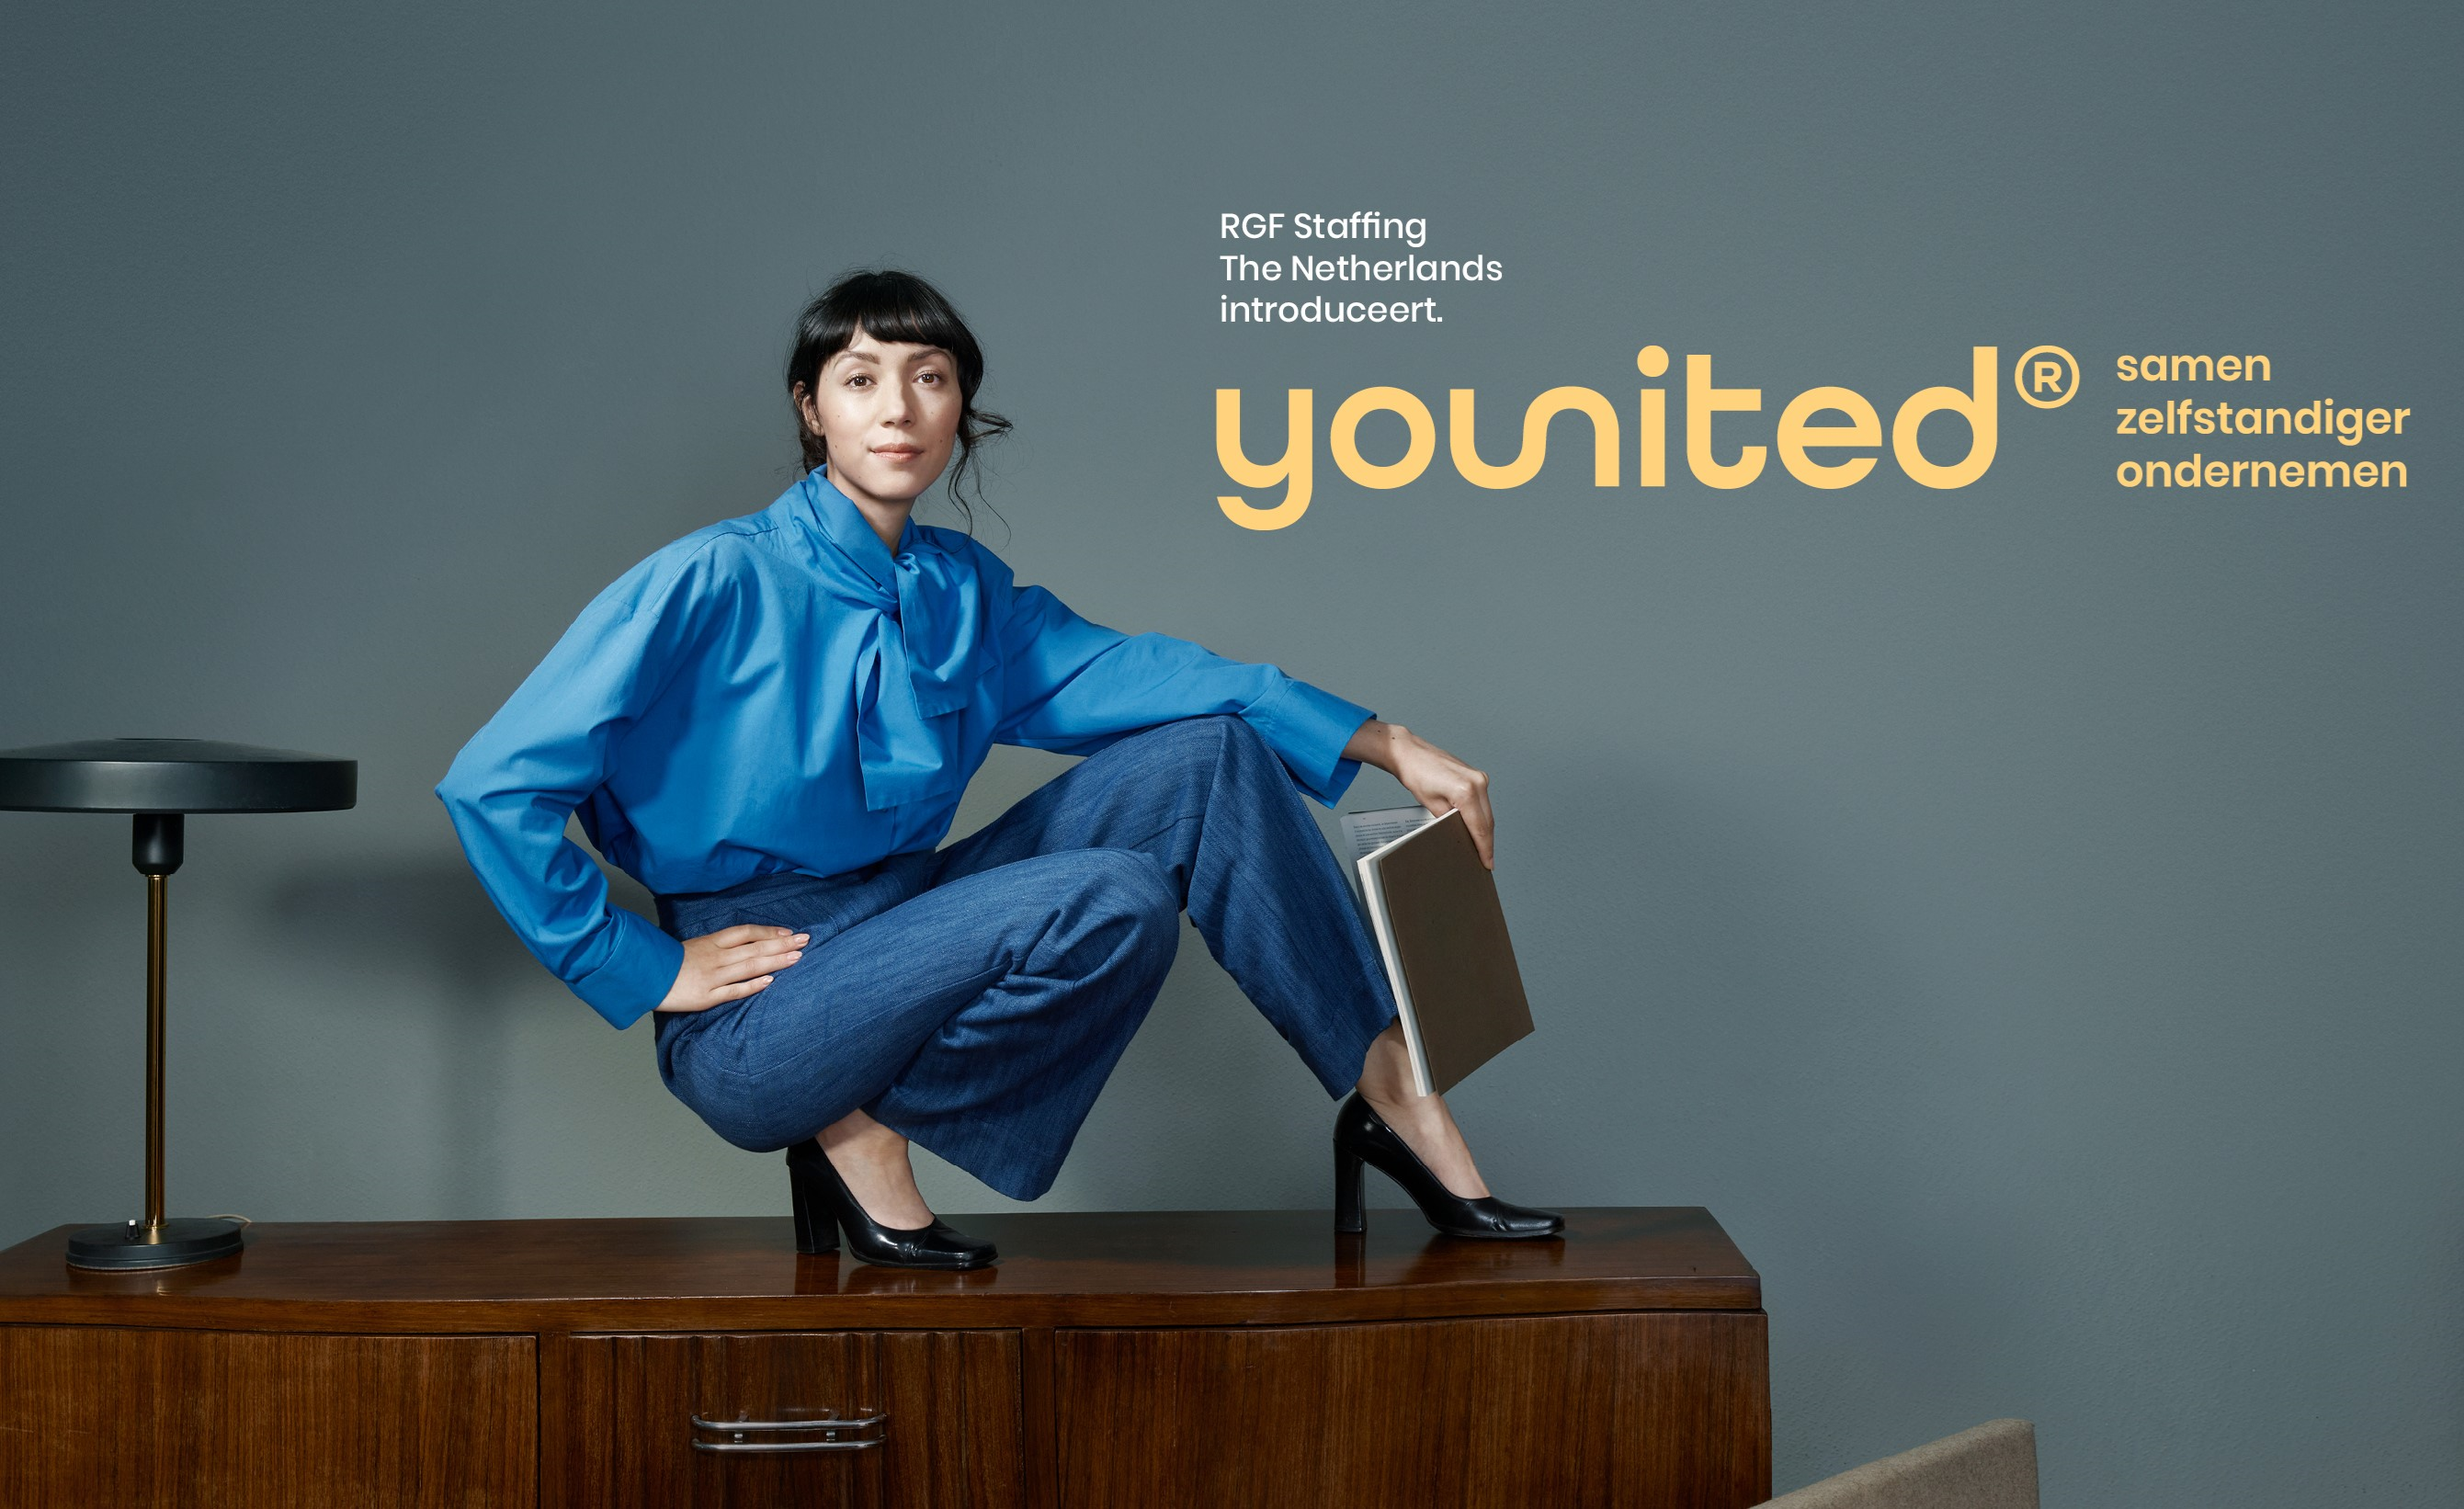 RGF Staffing The Netherlands introduceert Younited